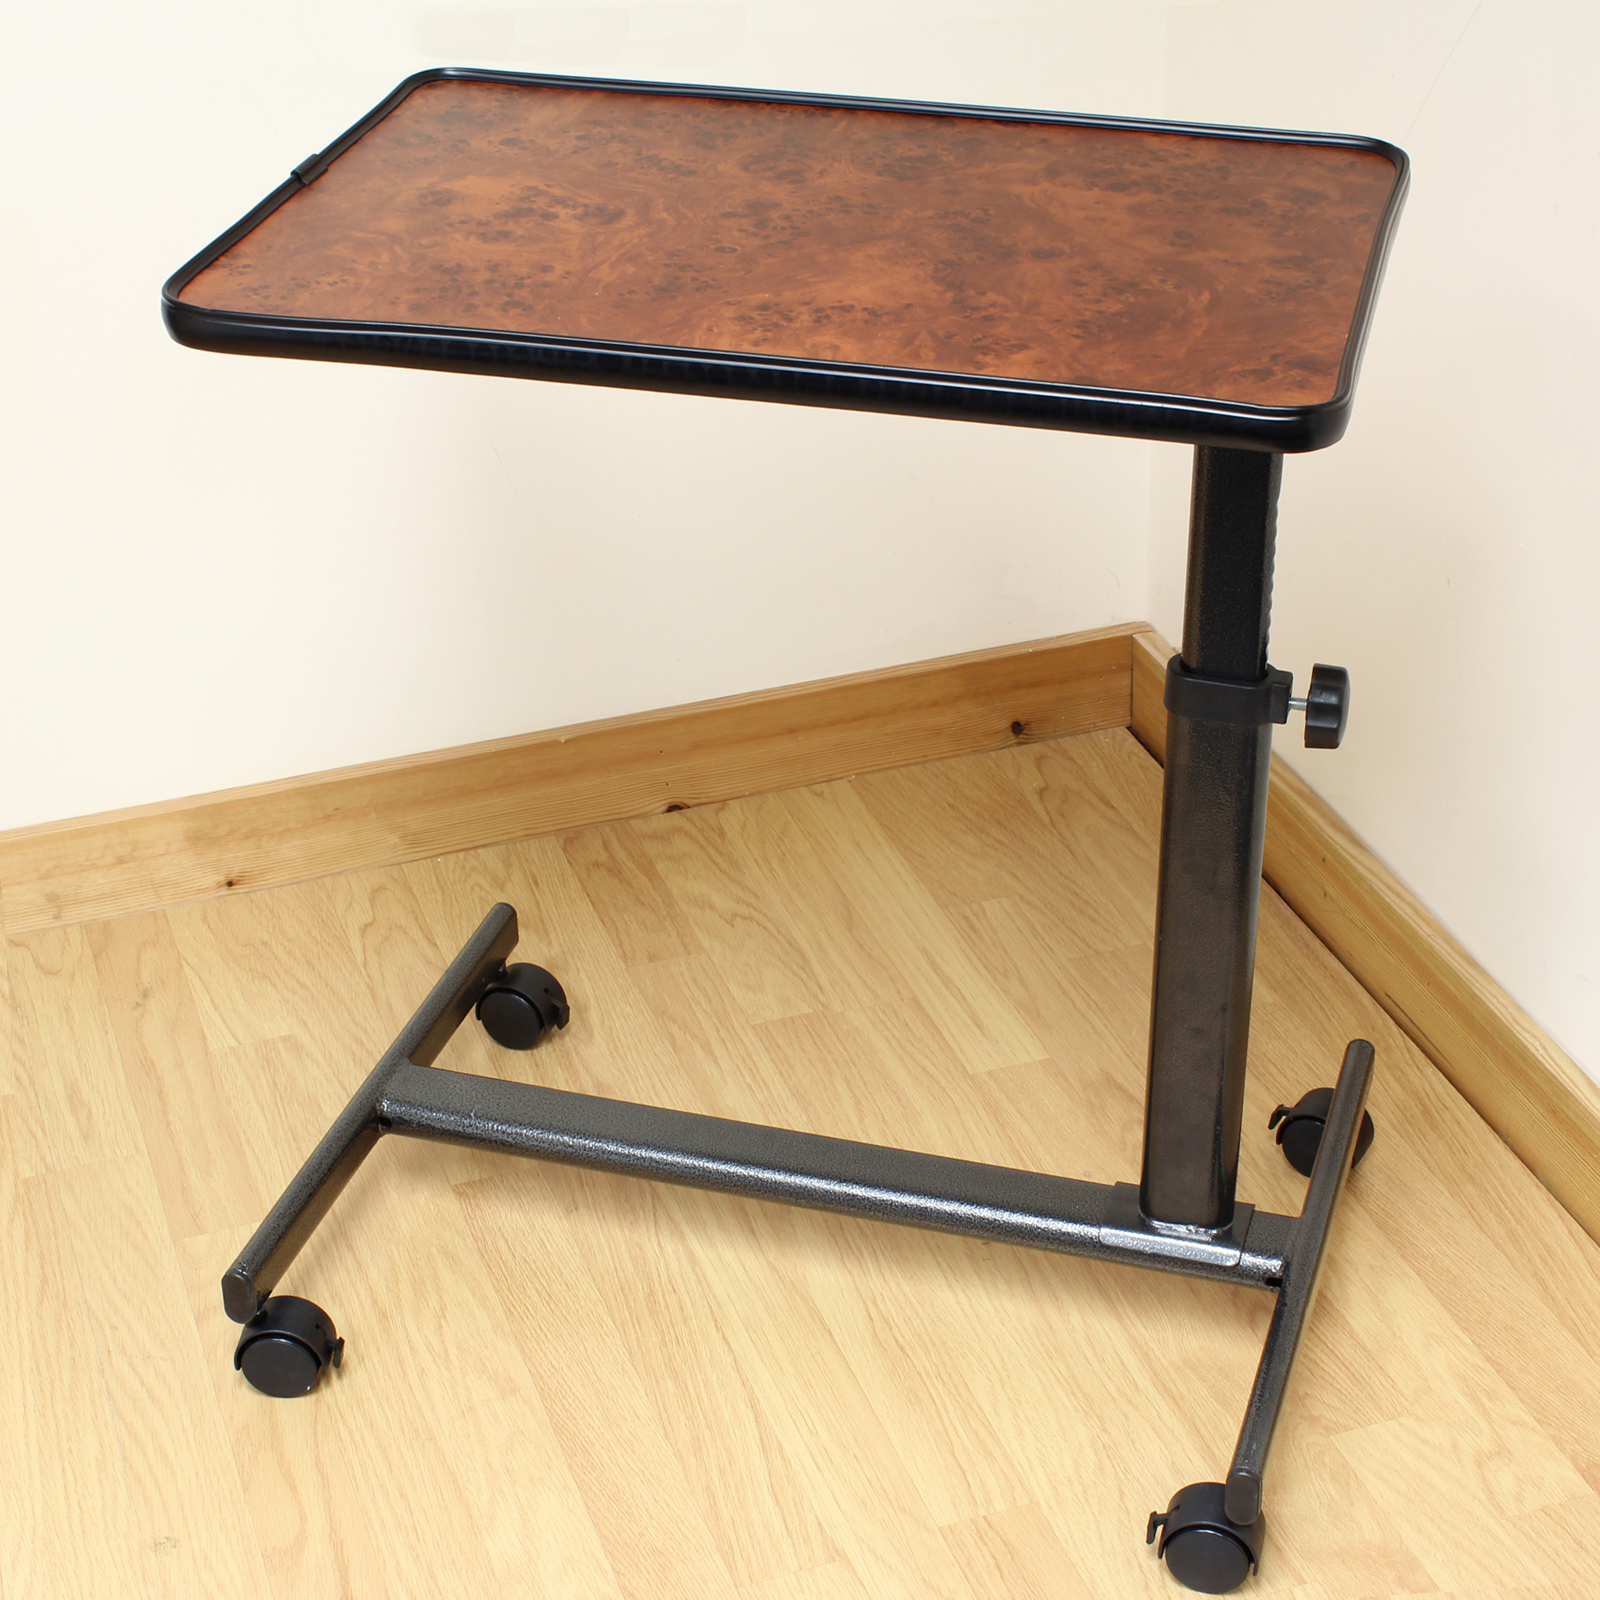 chair mobile stand lifts deluxe table for eating dinner breakfast over bed